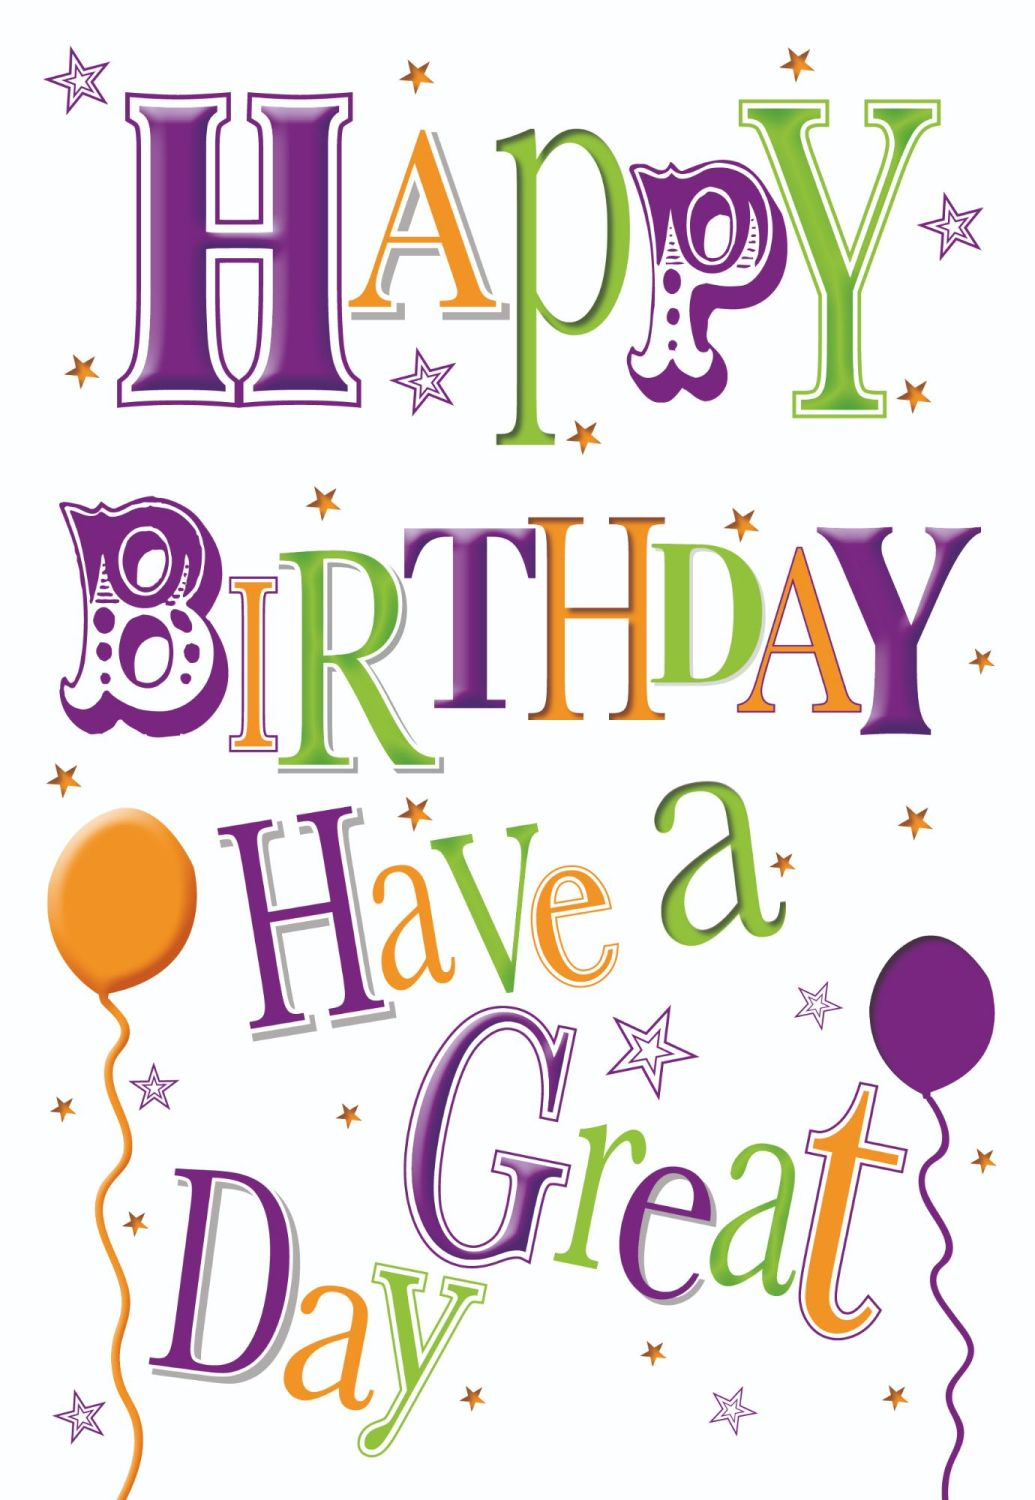 Male Birthday Cards - HAPPY BIRTHDAY - Have A GREAT Day - BIRTHDAY Cards Fo